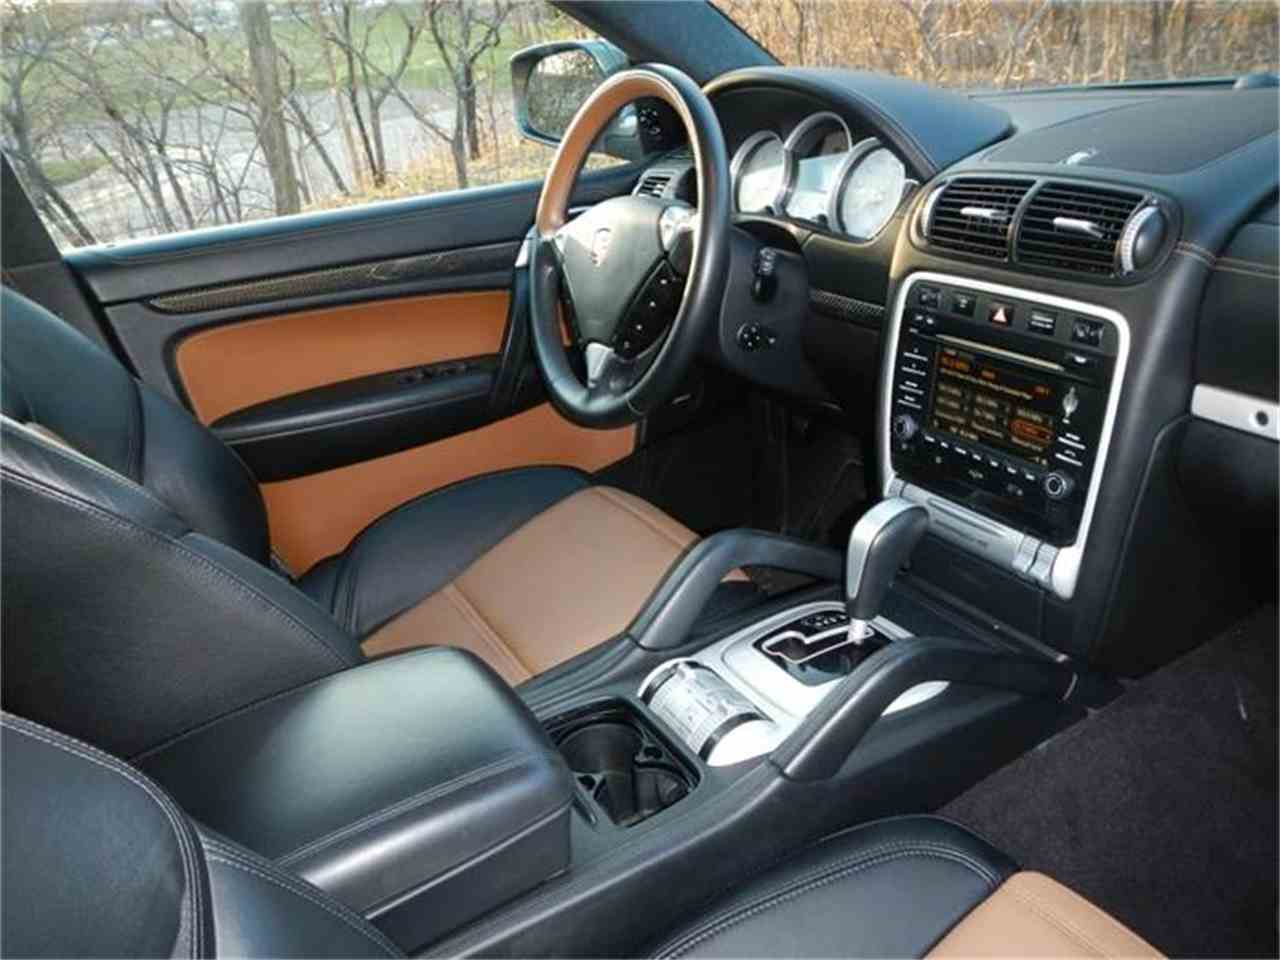 Large Picture of 2009 Porsche Cayenne located in St. Charles Illinois - $53,500.00 - H7S4